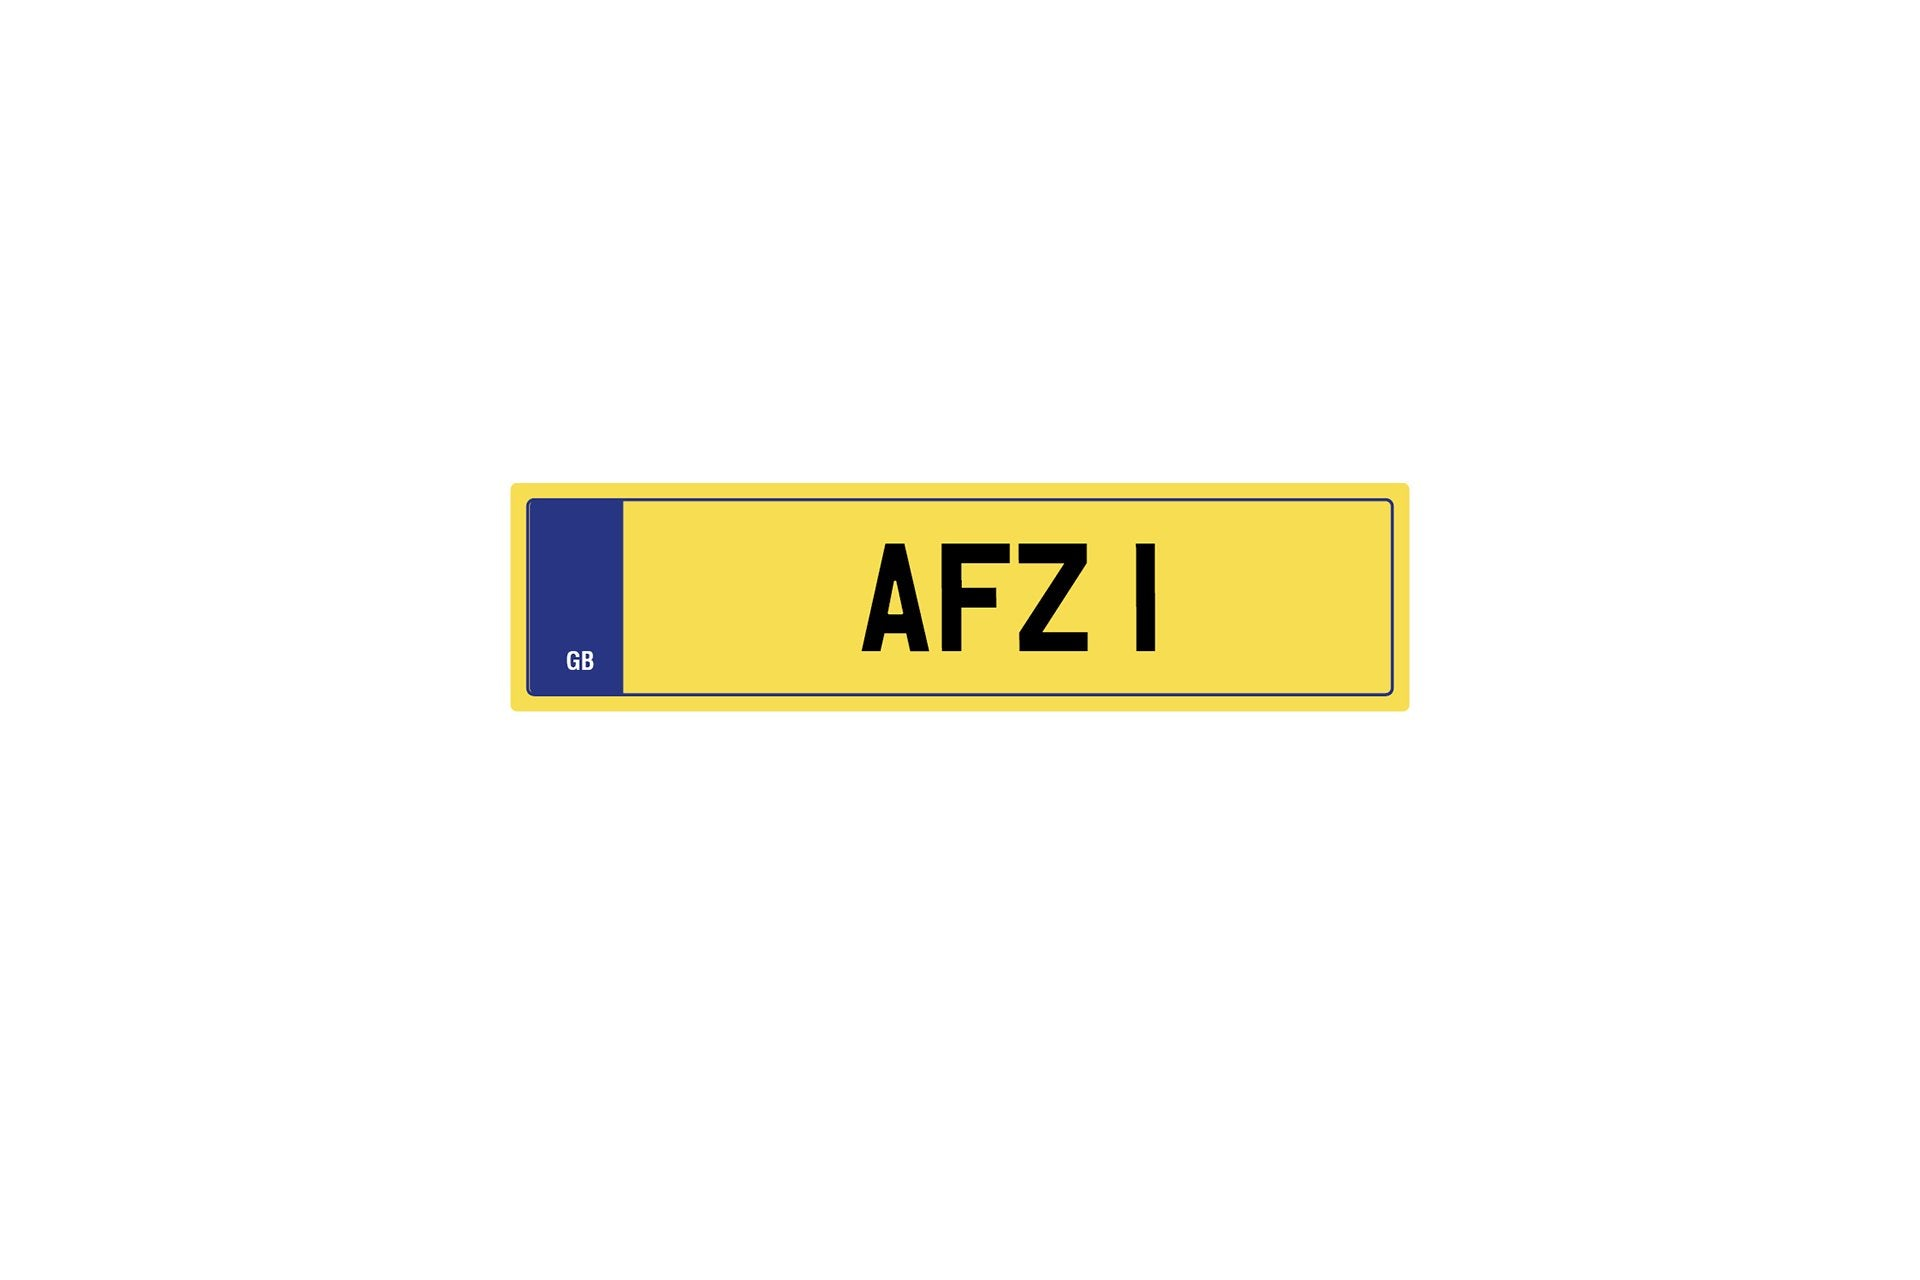 Private Plate Afz 1 by Kahn - Image 265